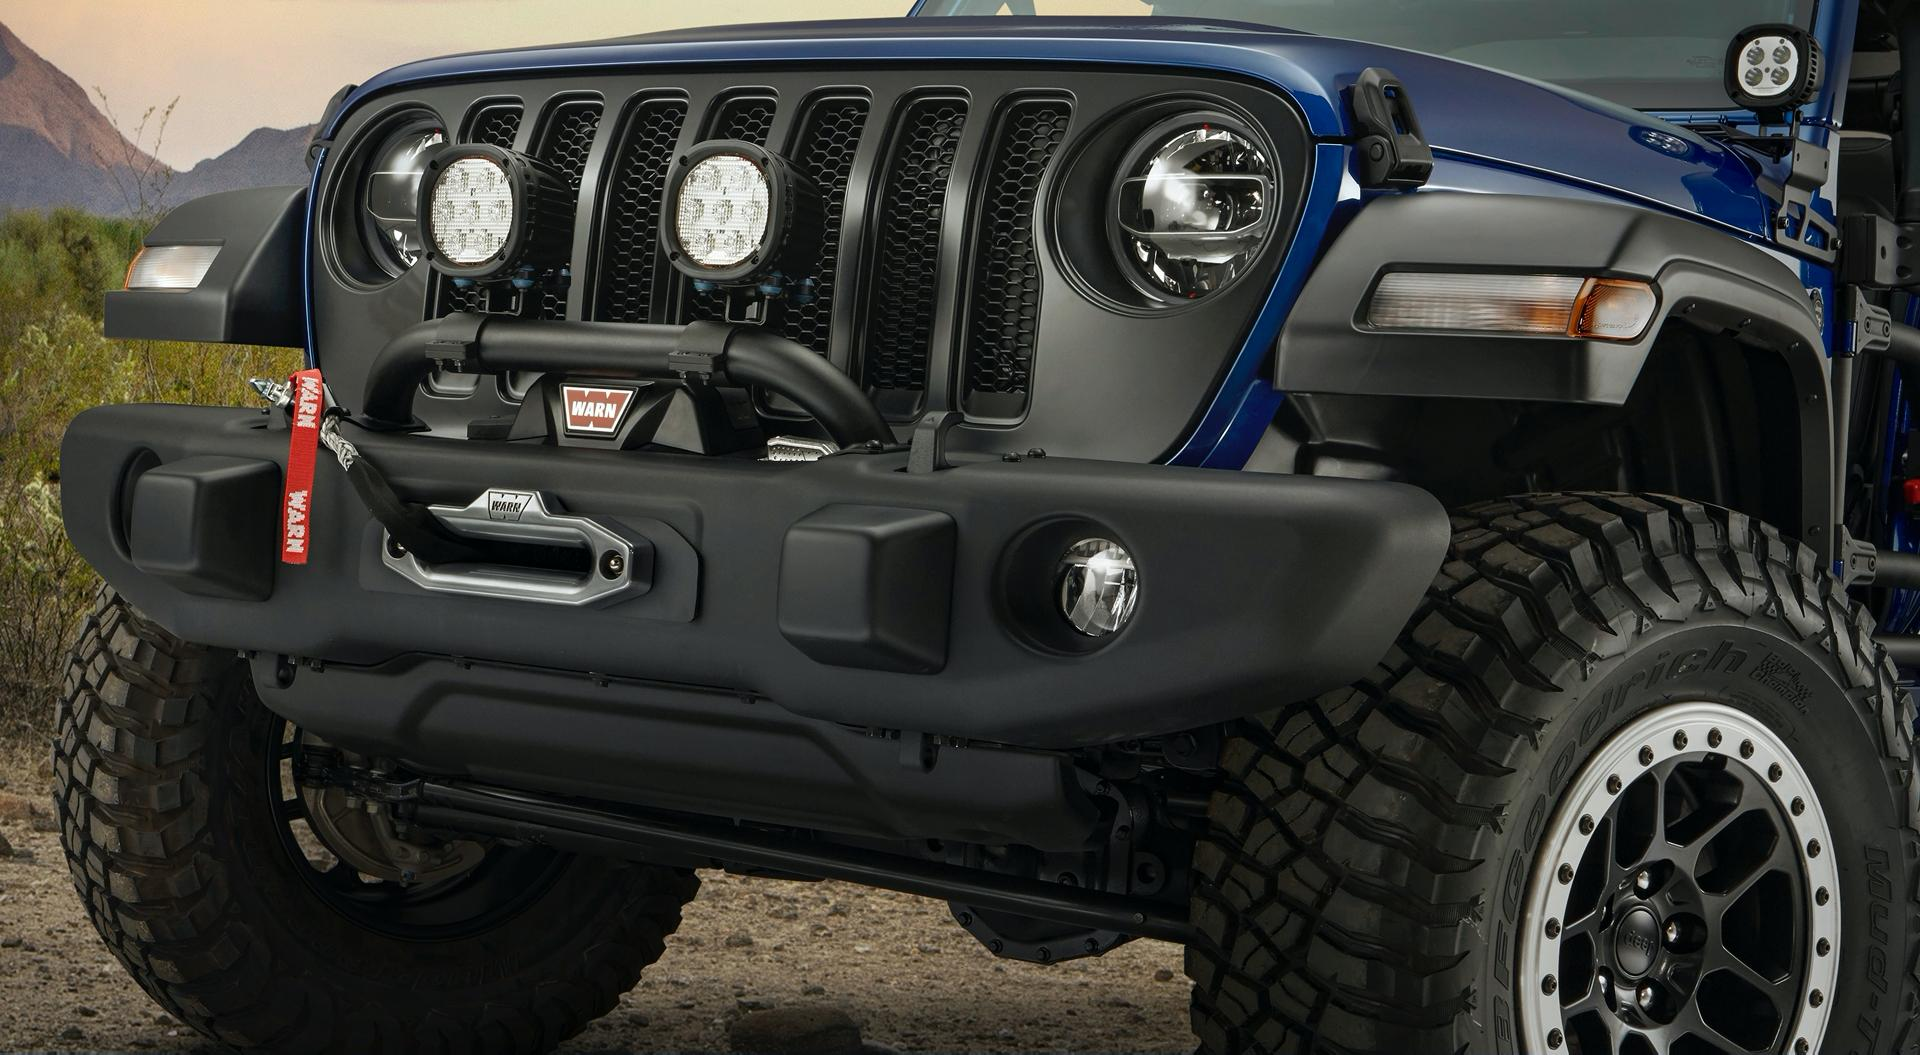 Jeep-Wrangler-JPP-20-Limited-Edition-4